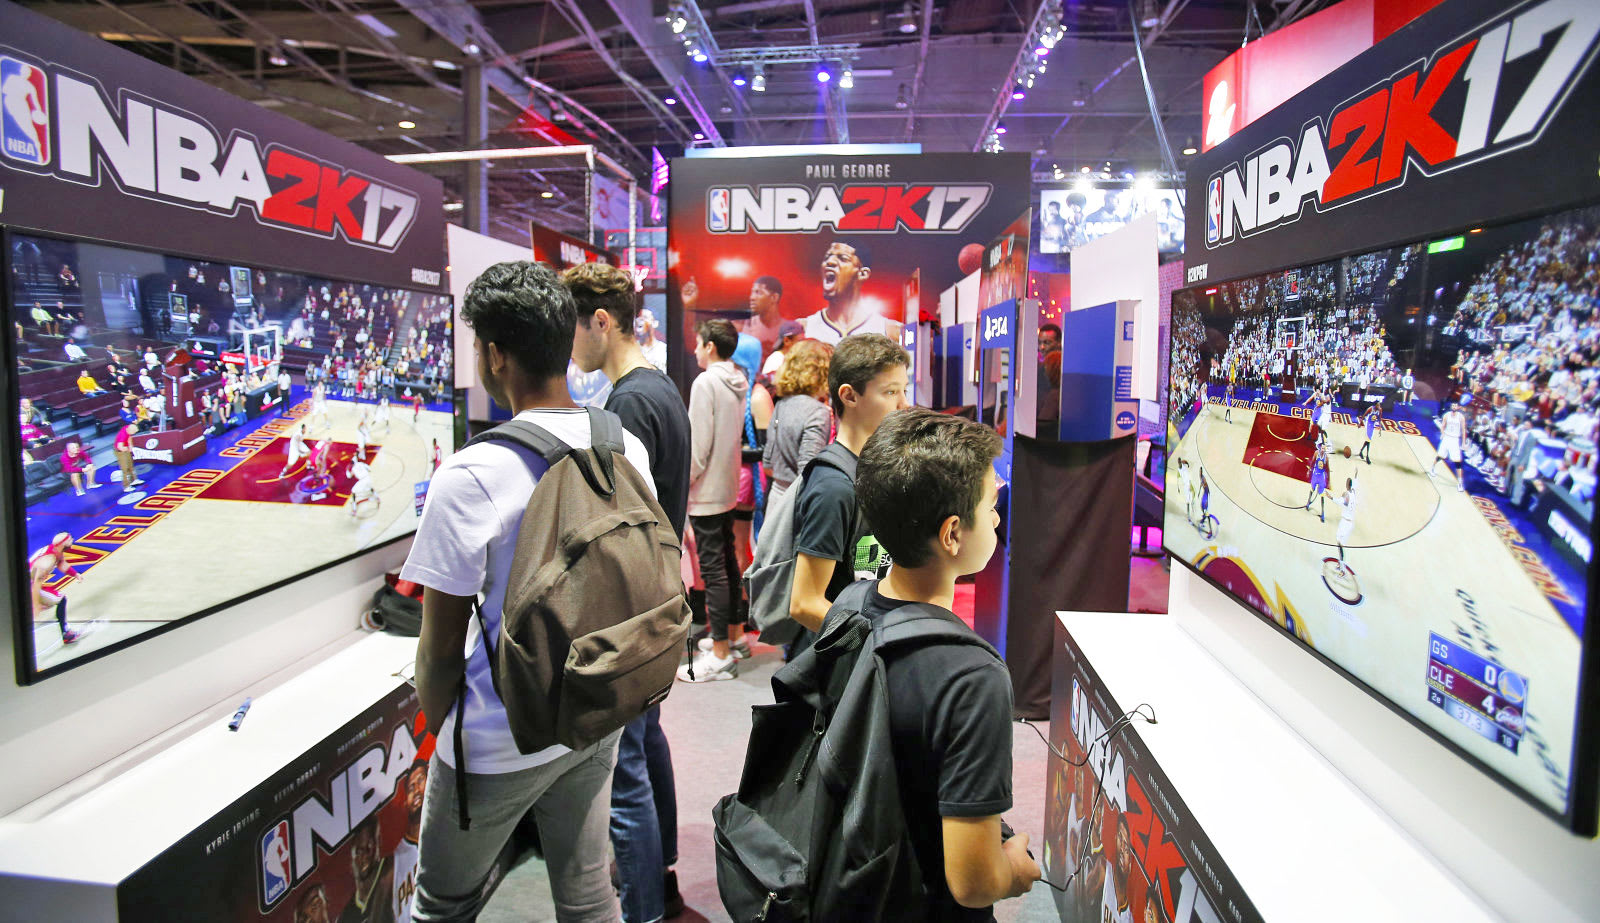 NBA 2K eLeague' eSports squads will be owned by NBA teams